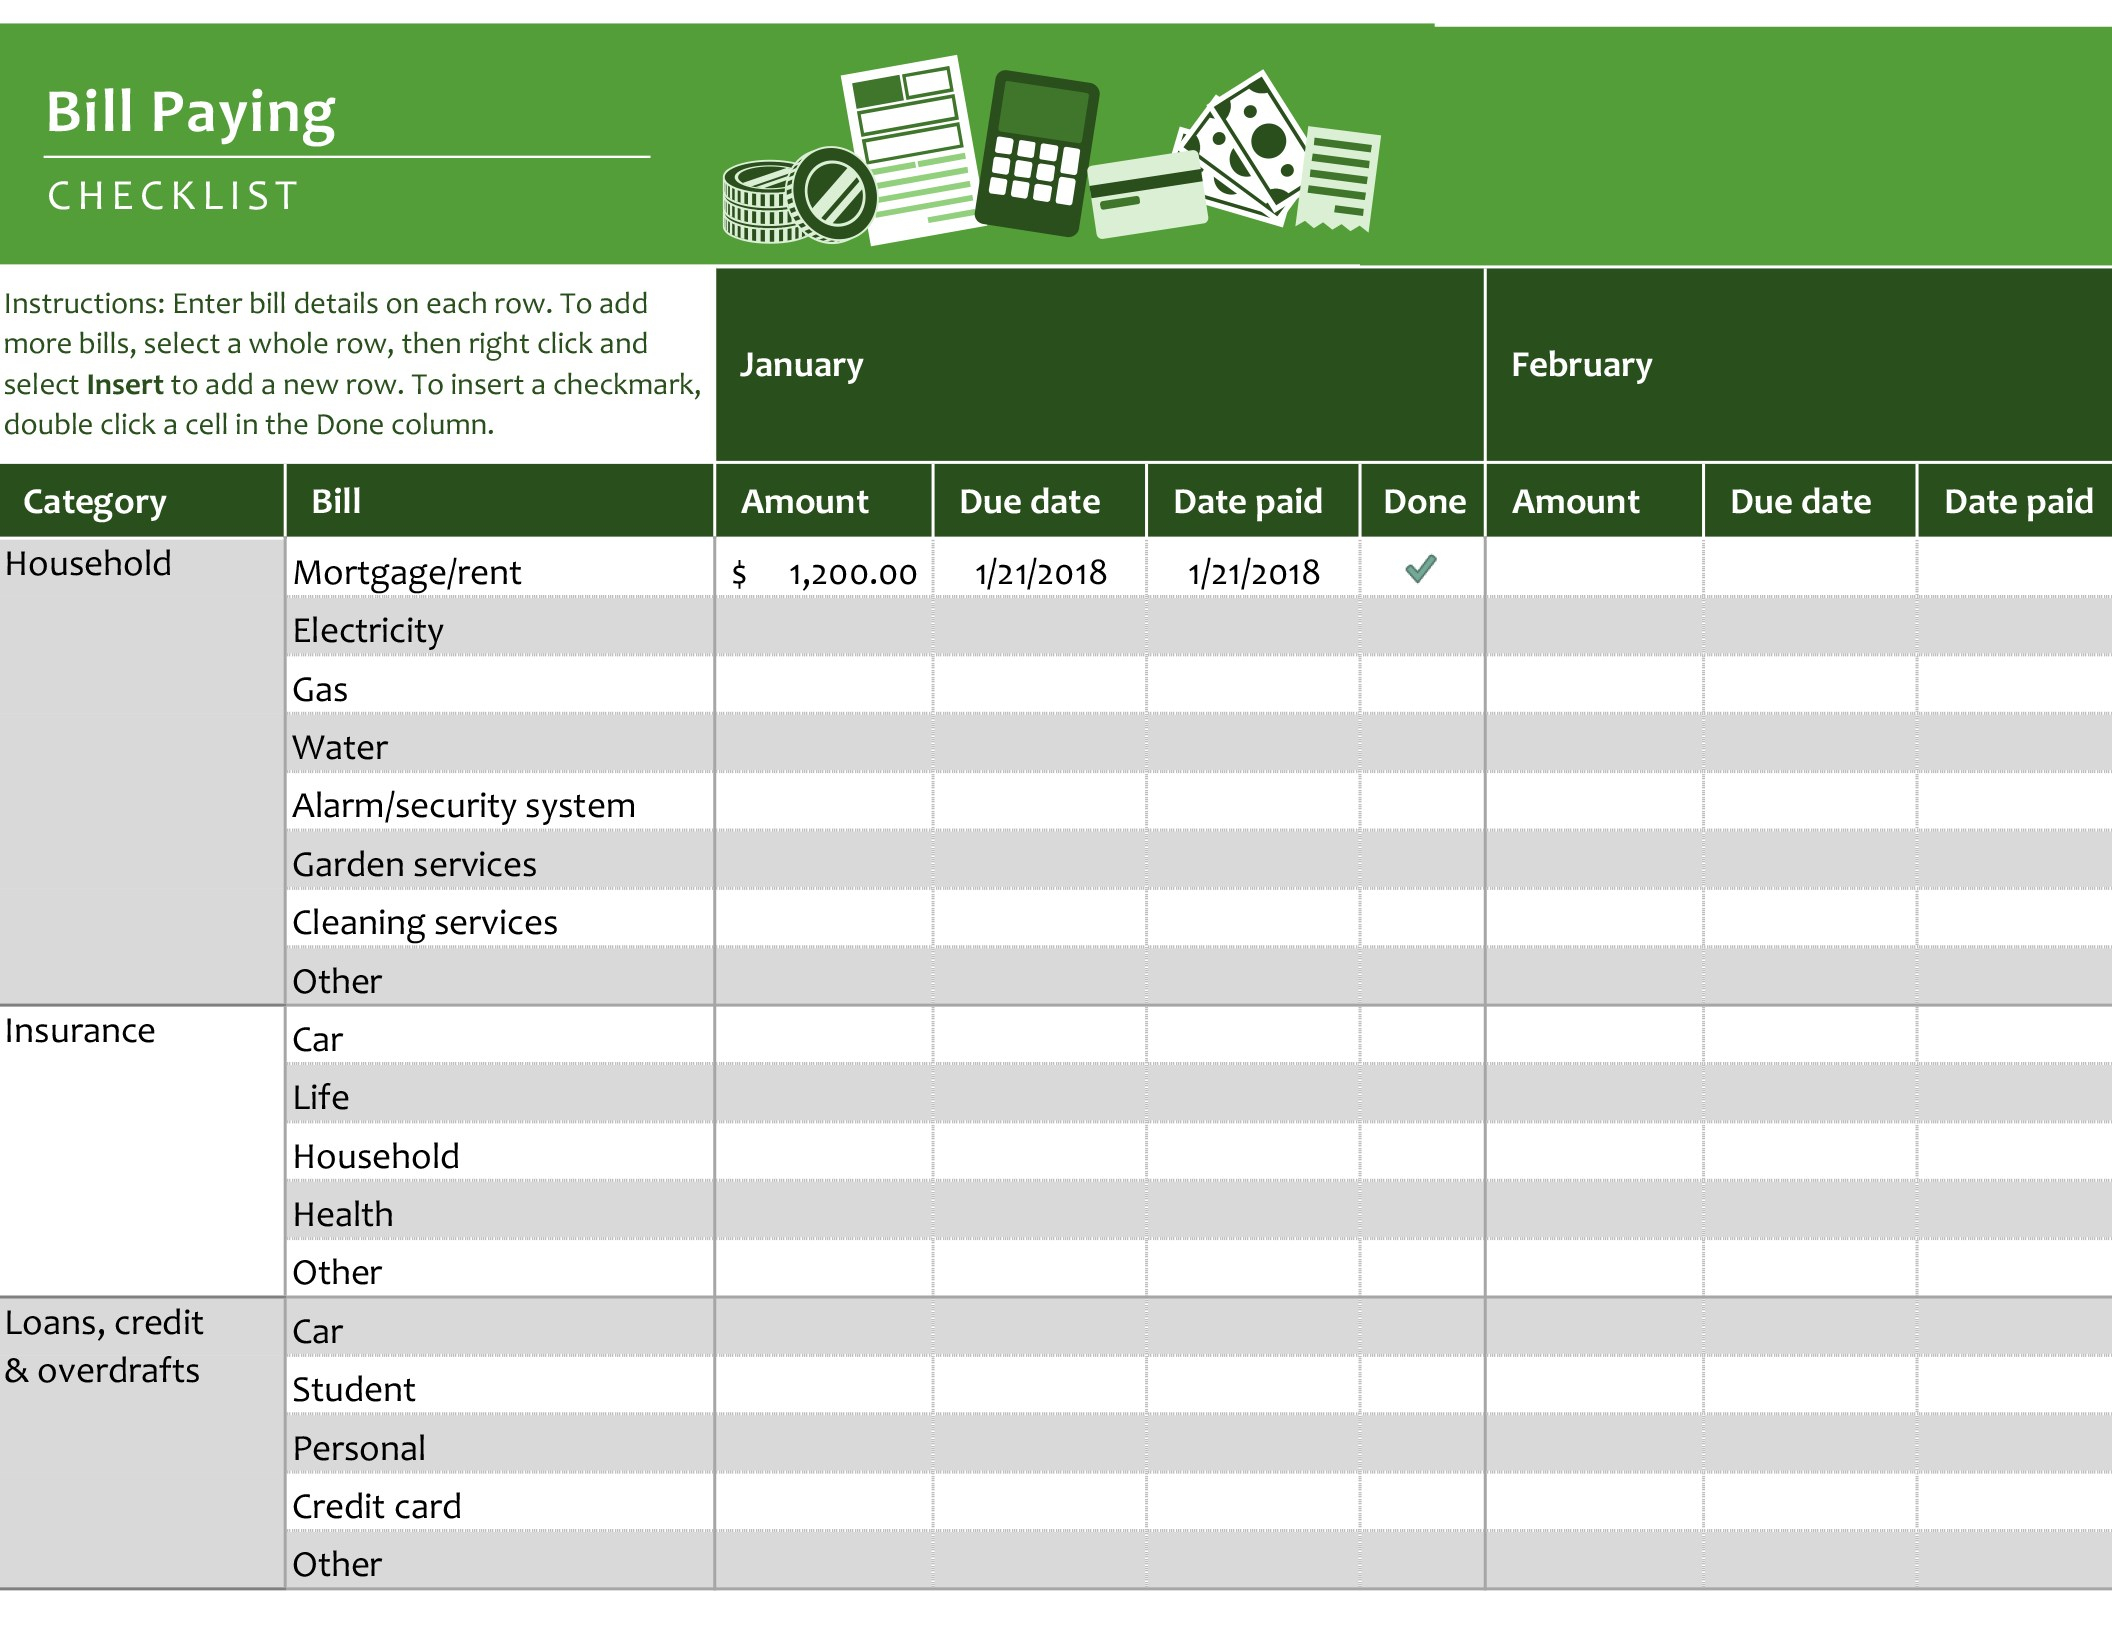 Bill Paying Checklist - Office Templates & Themes - Office 365